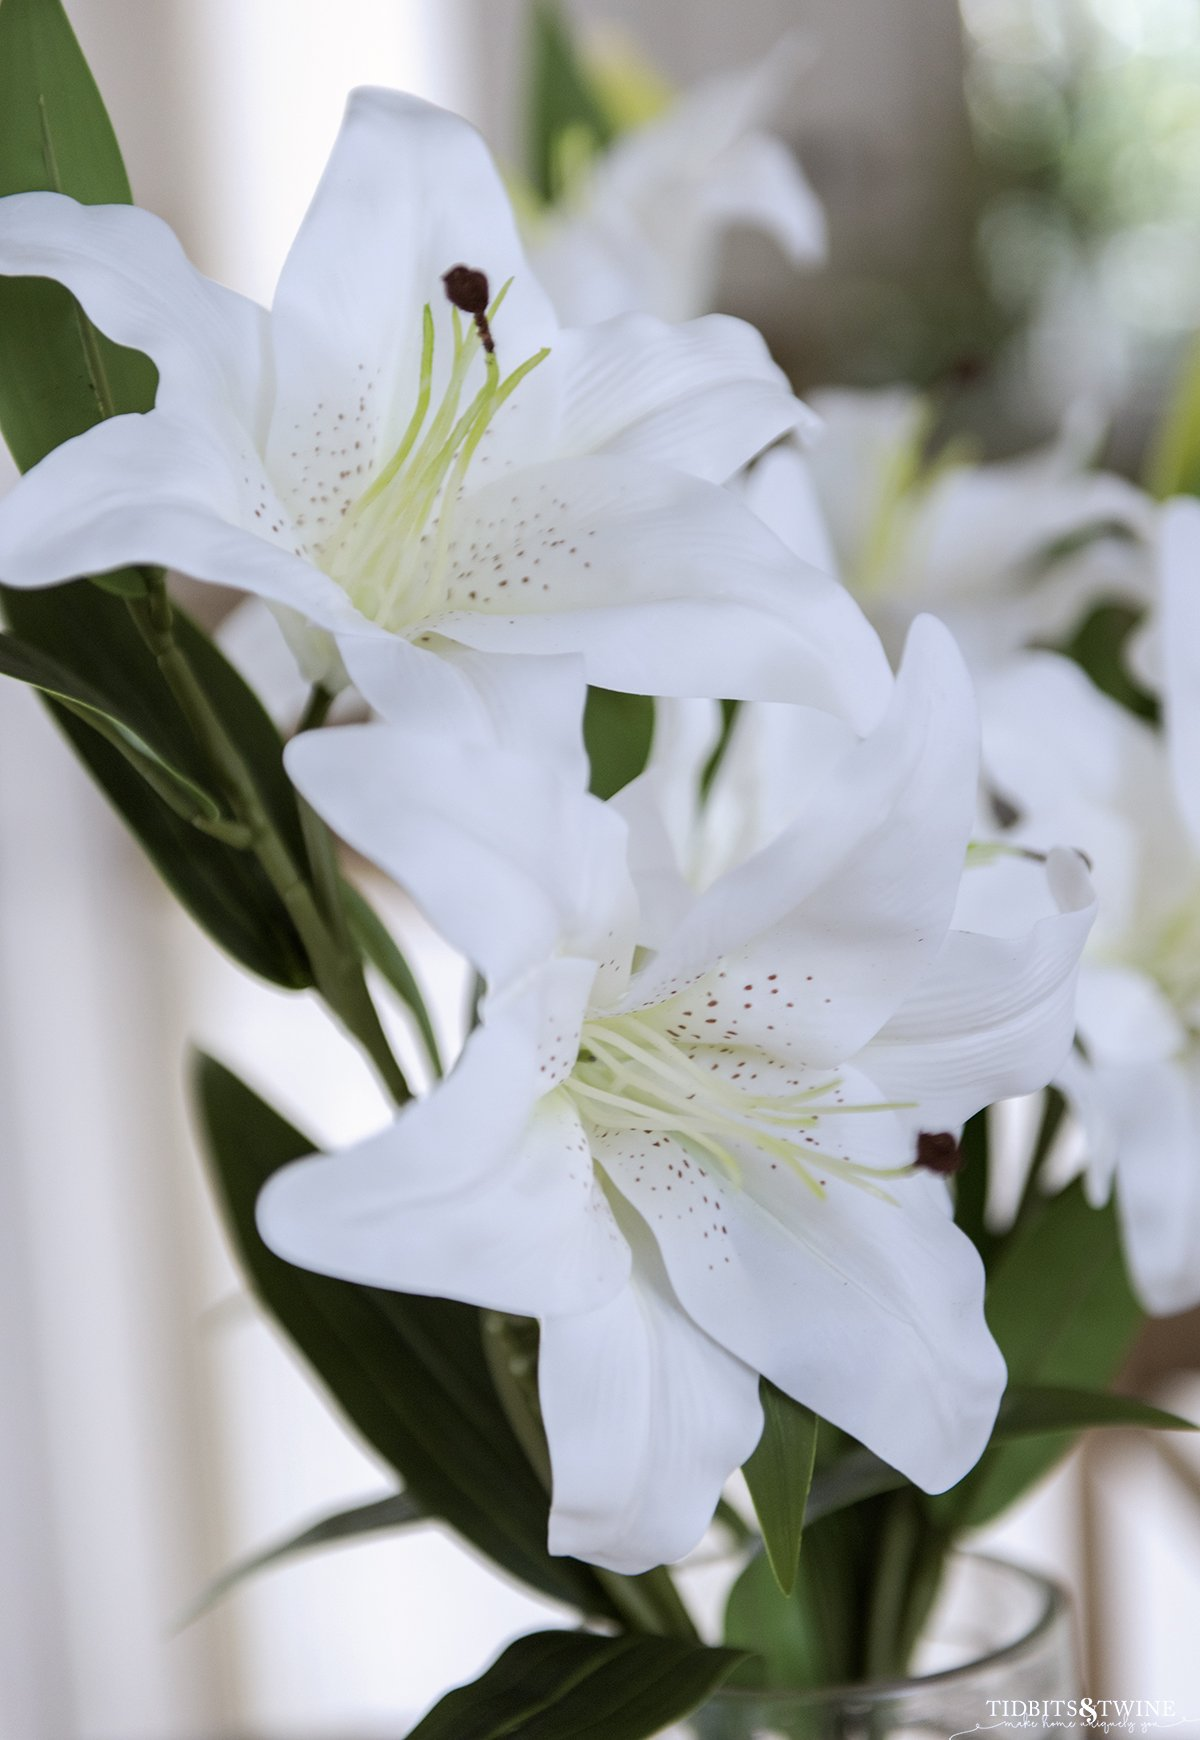 closeup of artificial white lily that looks real showing its petals stamen and pollen and green leaves